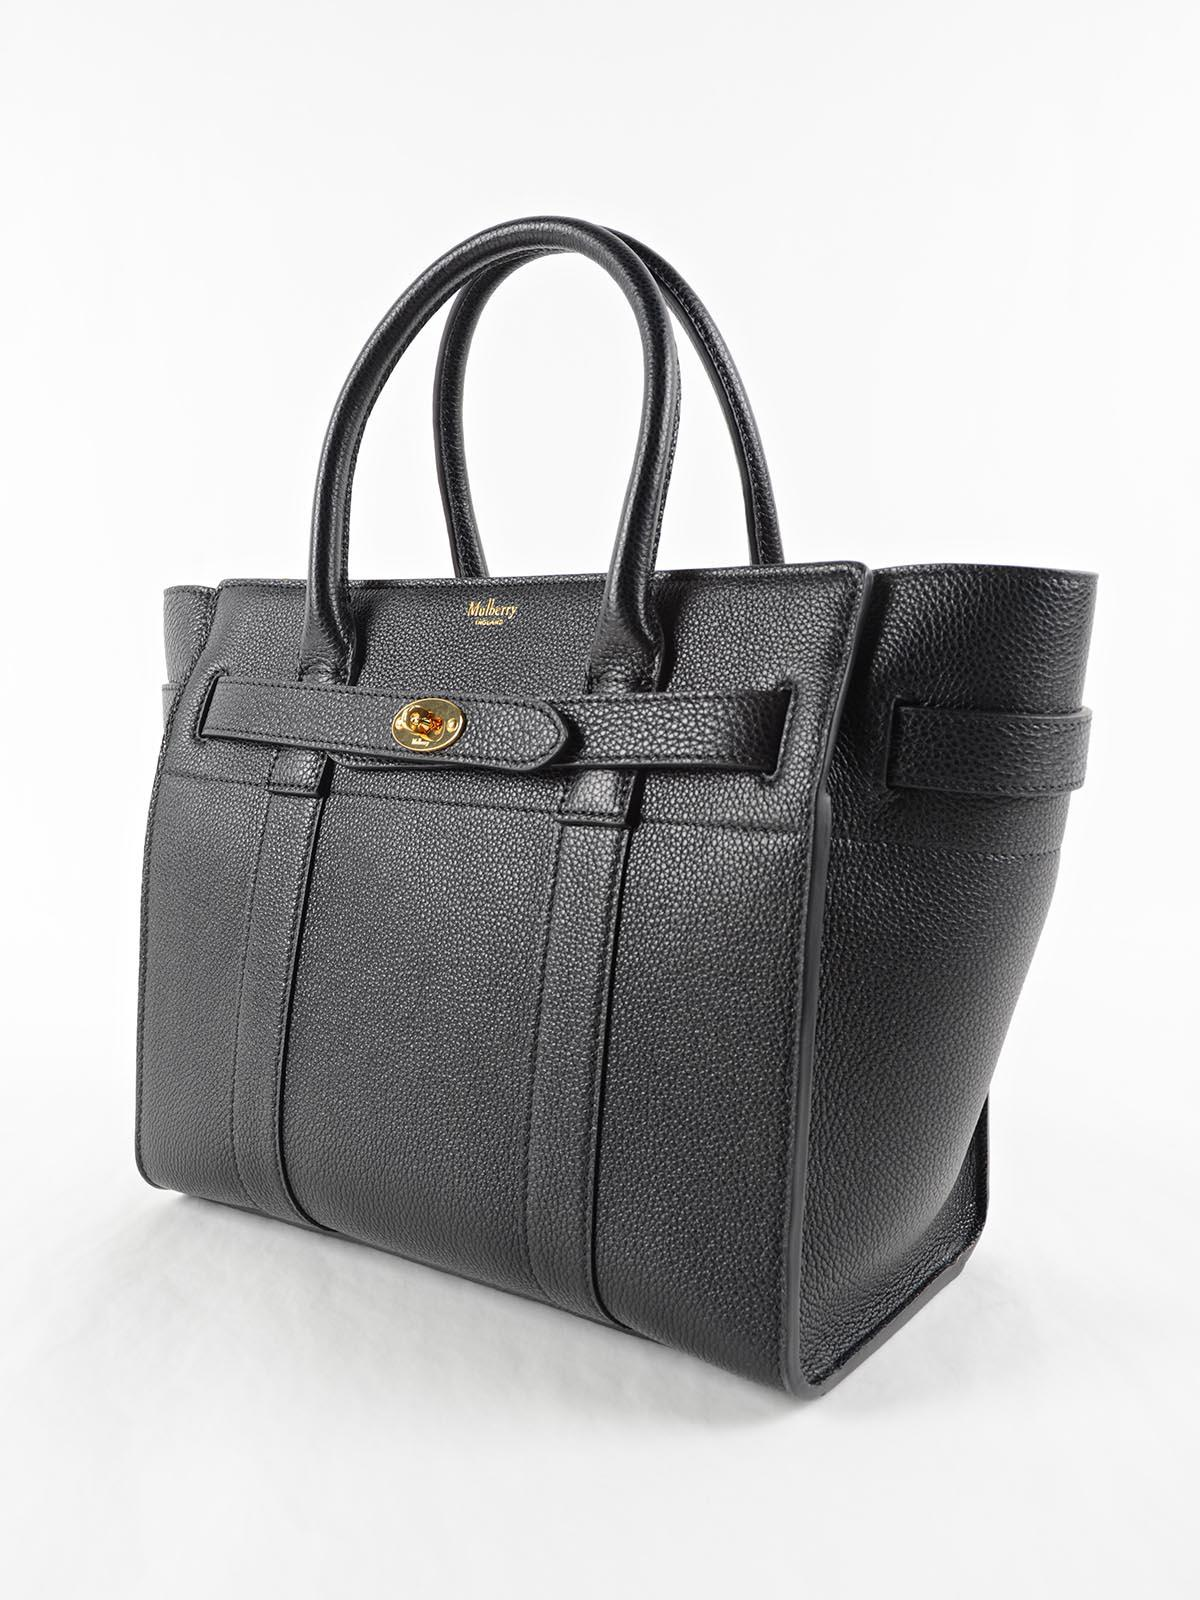 3b709f83eb Mulberry Small Zip Bayswater Bag in Black - Lyst